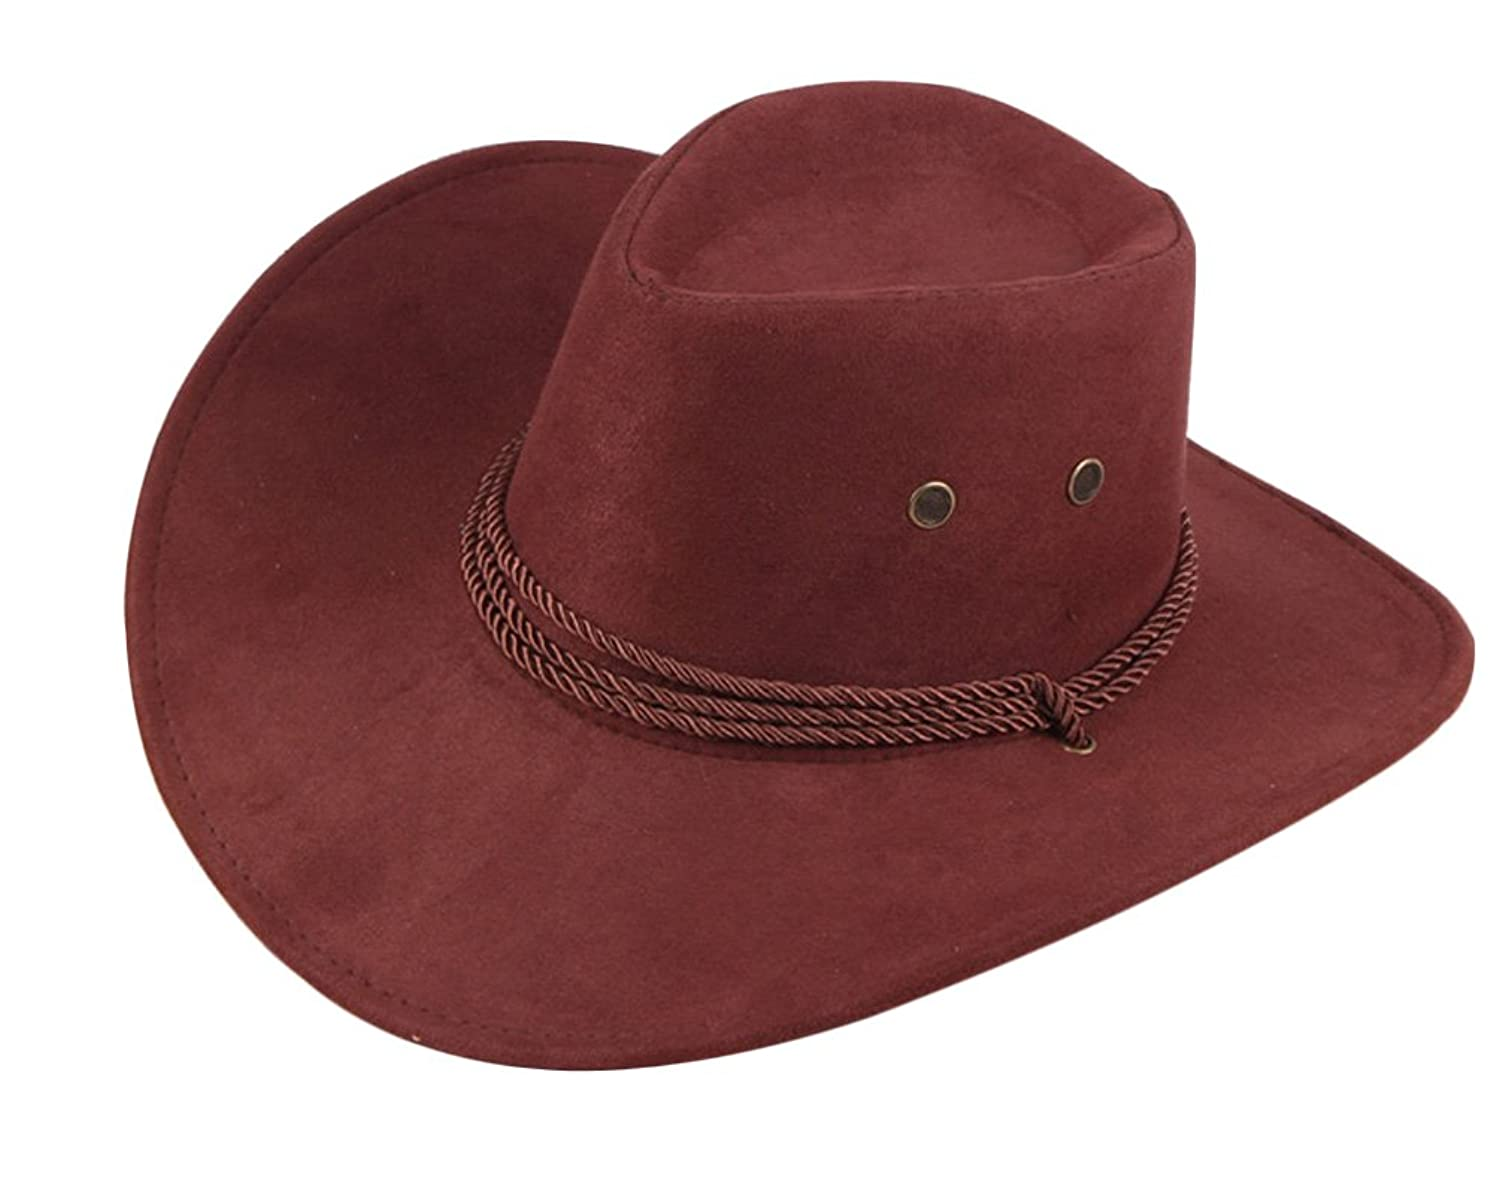 Faux Leather Western Cowboy Cowgirl Hat Fedora Wide Brim   Drawstring Red  Brown db815e295fa